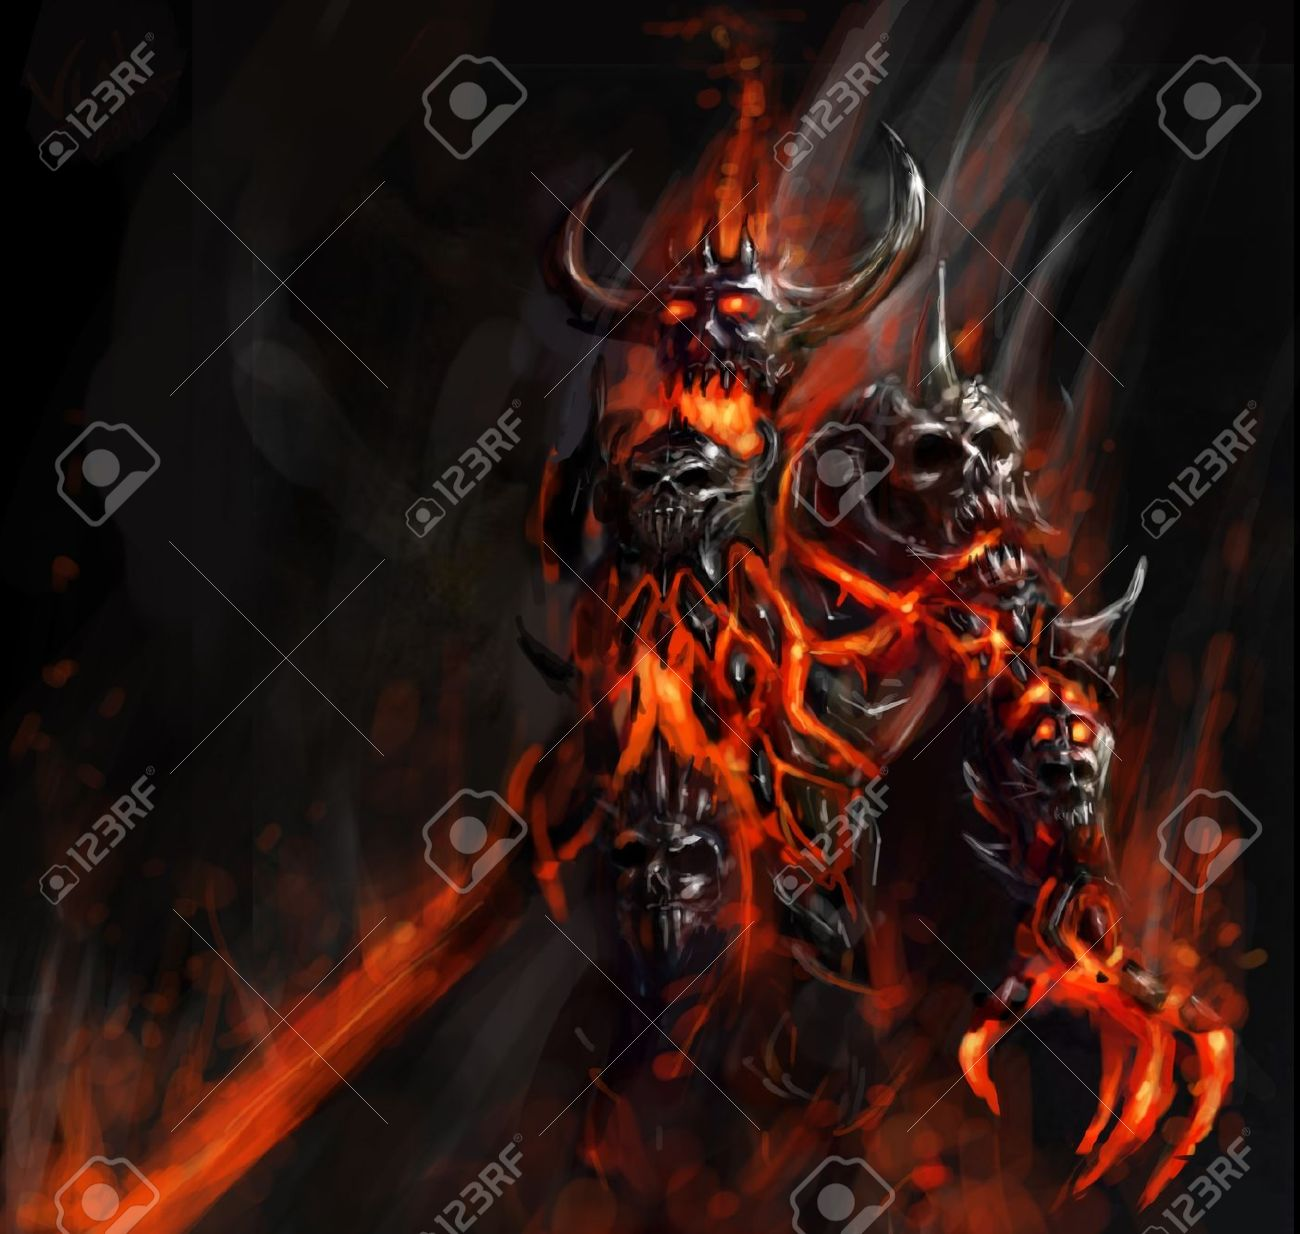 apocalyptic flaming doom bringer of hell Stock Photo - 12155127